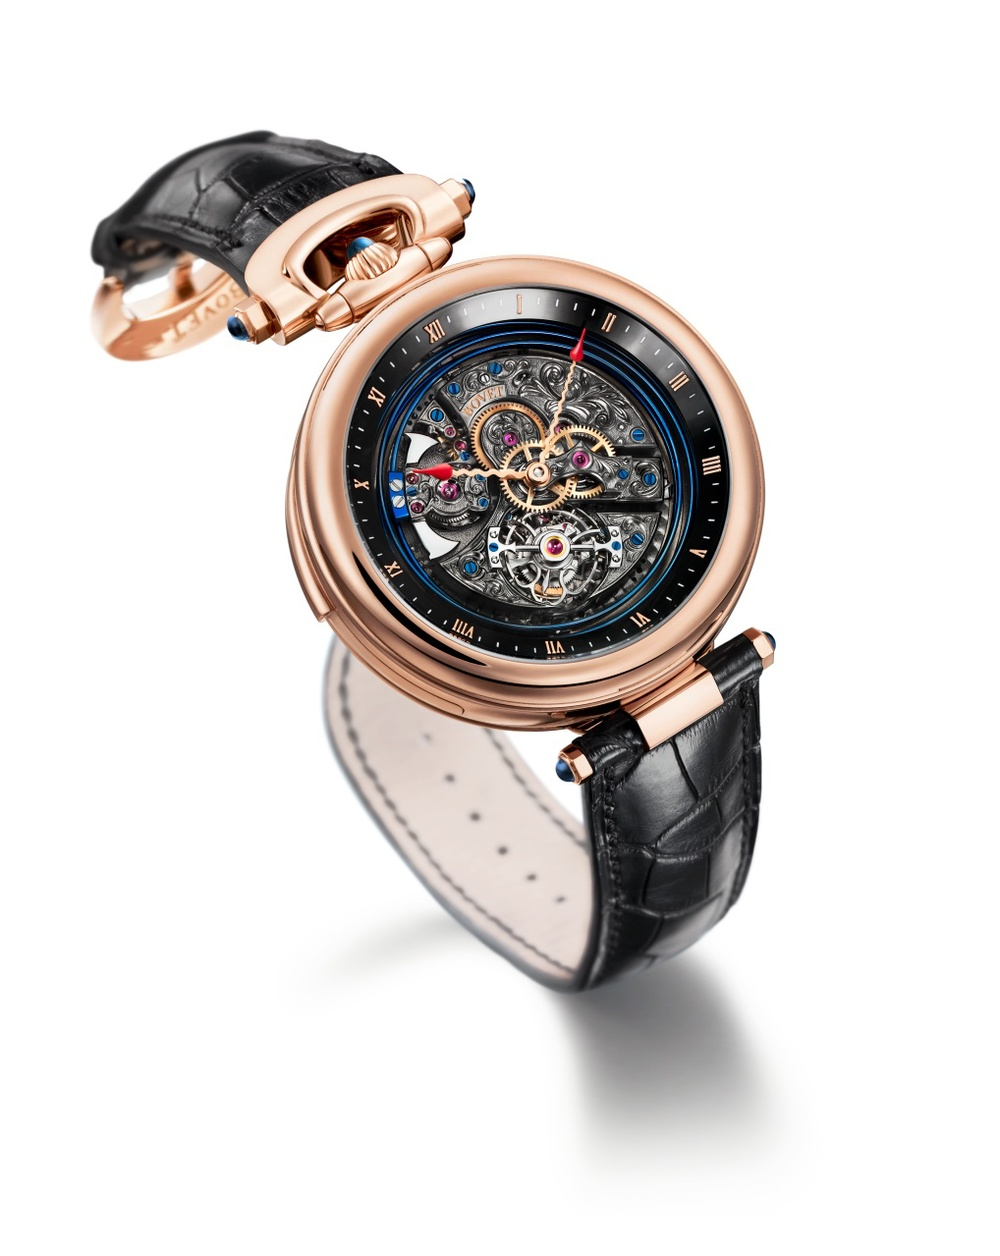 Bovet Watch Fleurier Grandes Complications Ref. Nr. AIRM003 Call 312-944-3100 | For Availability